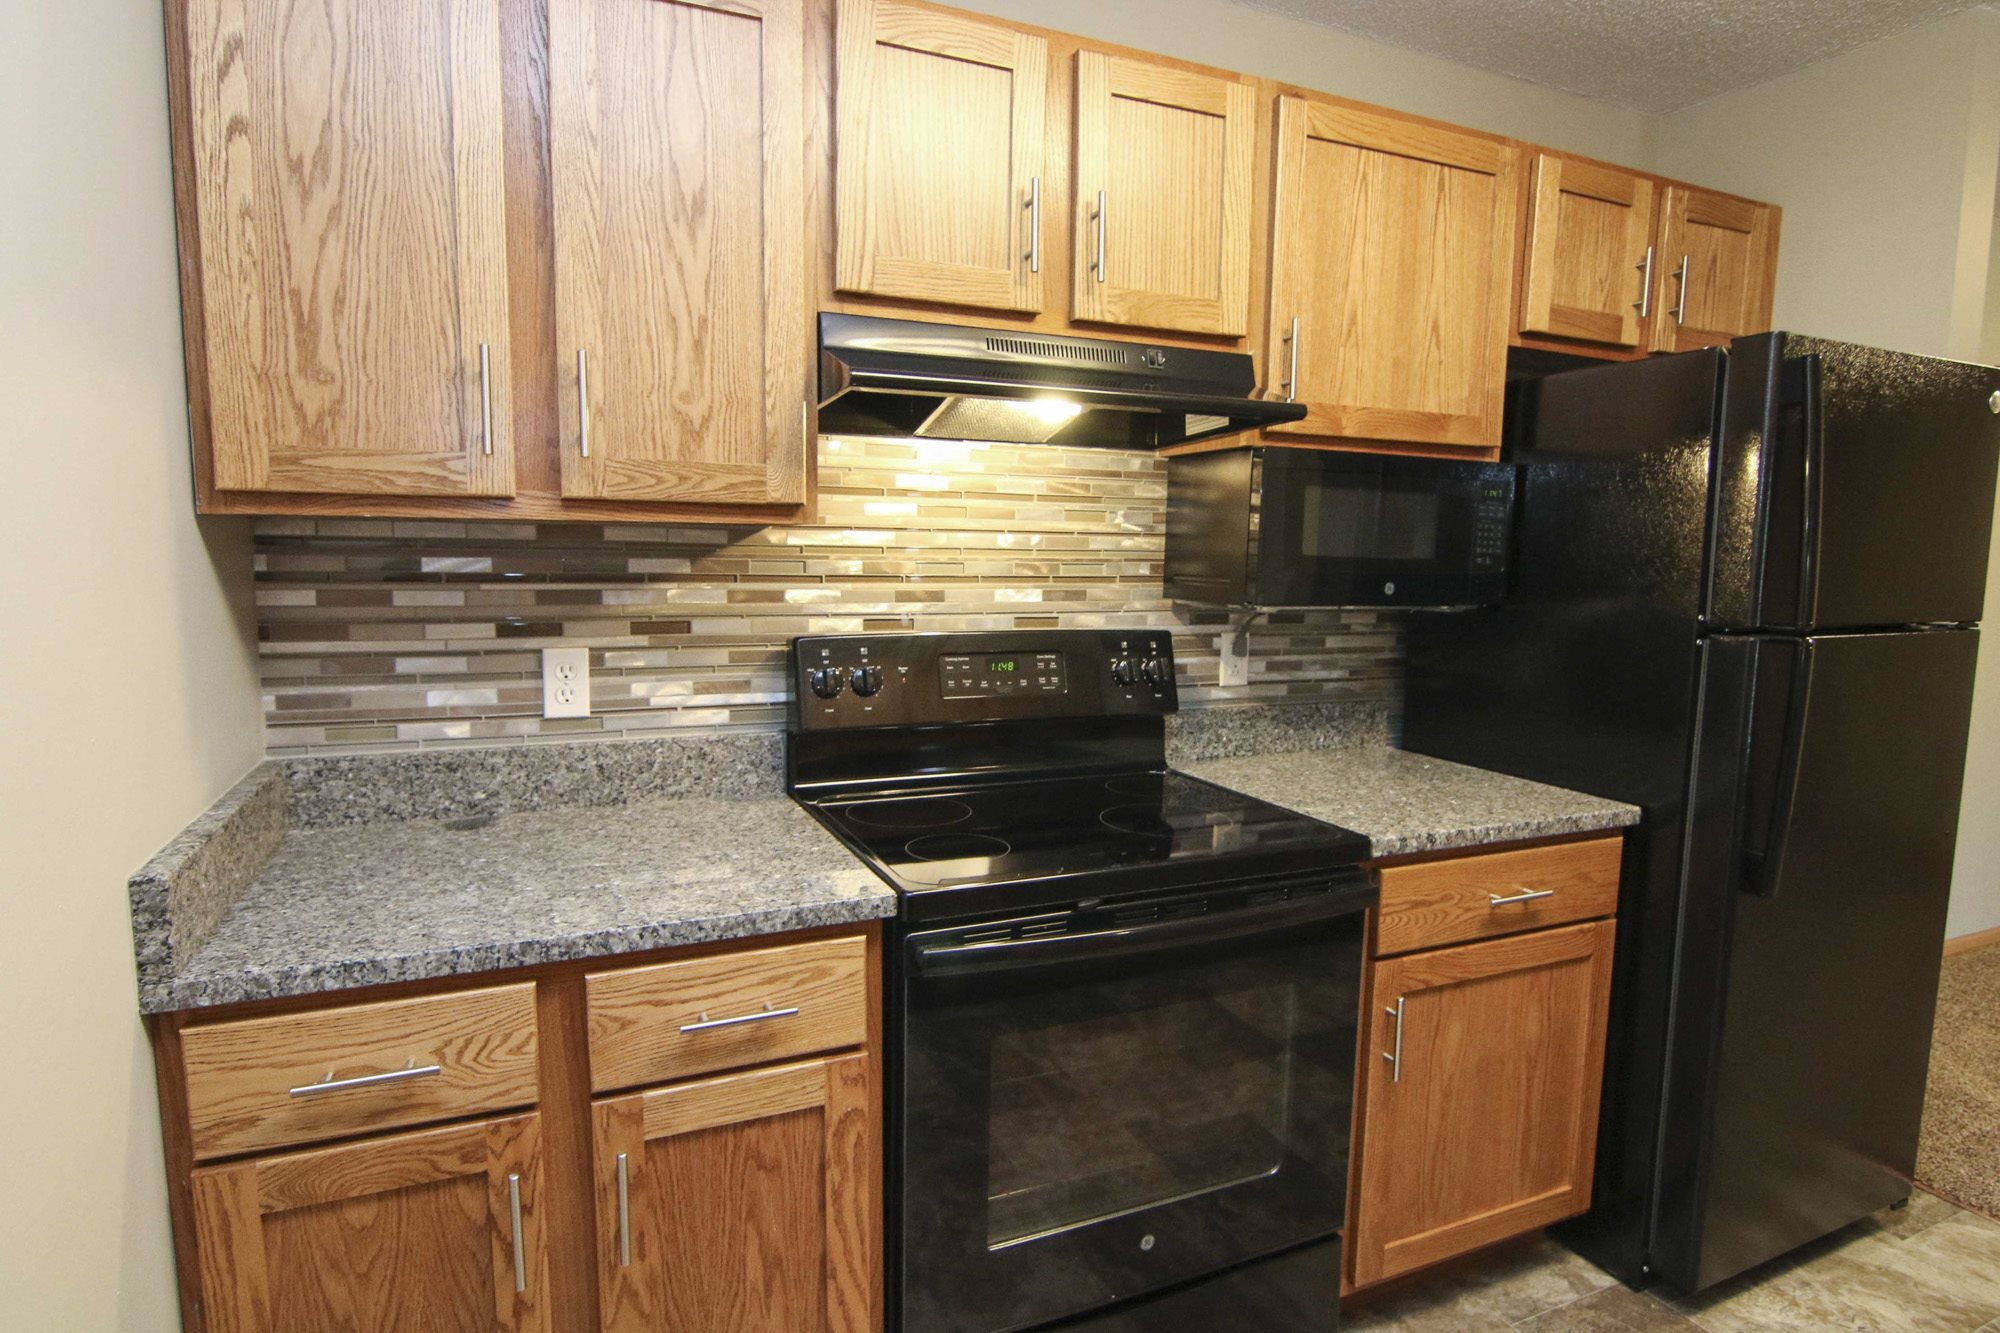 Interiors-The Northbrook renovated kitchen with granite